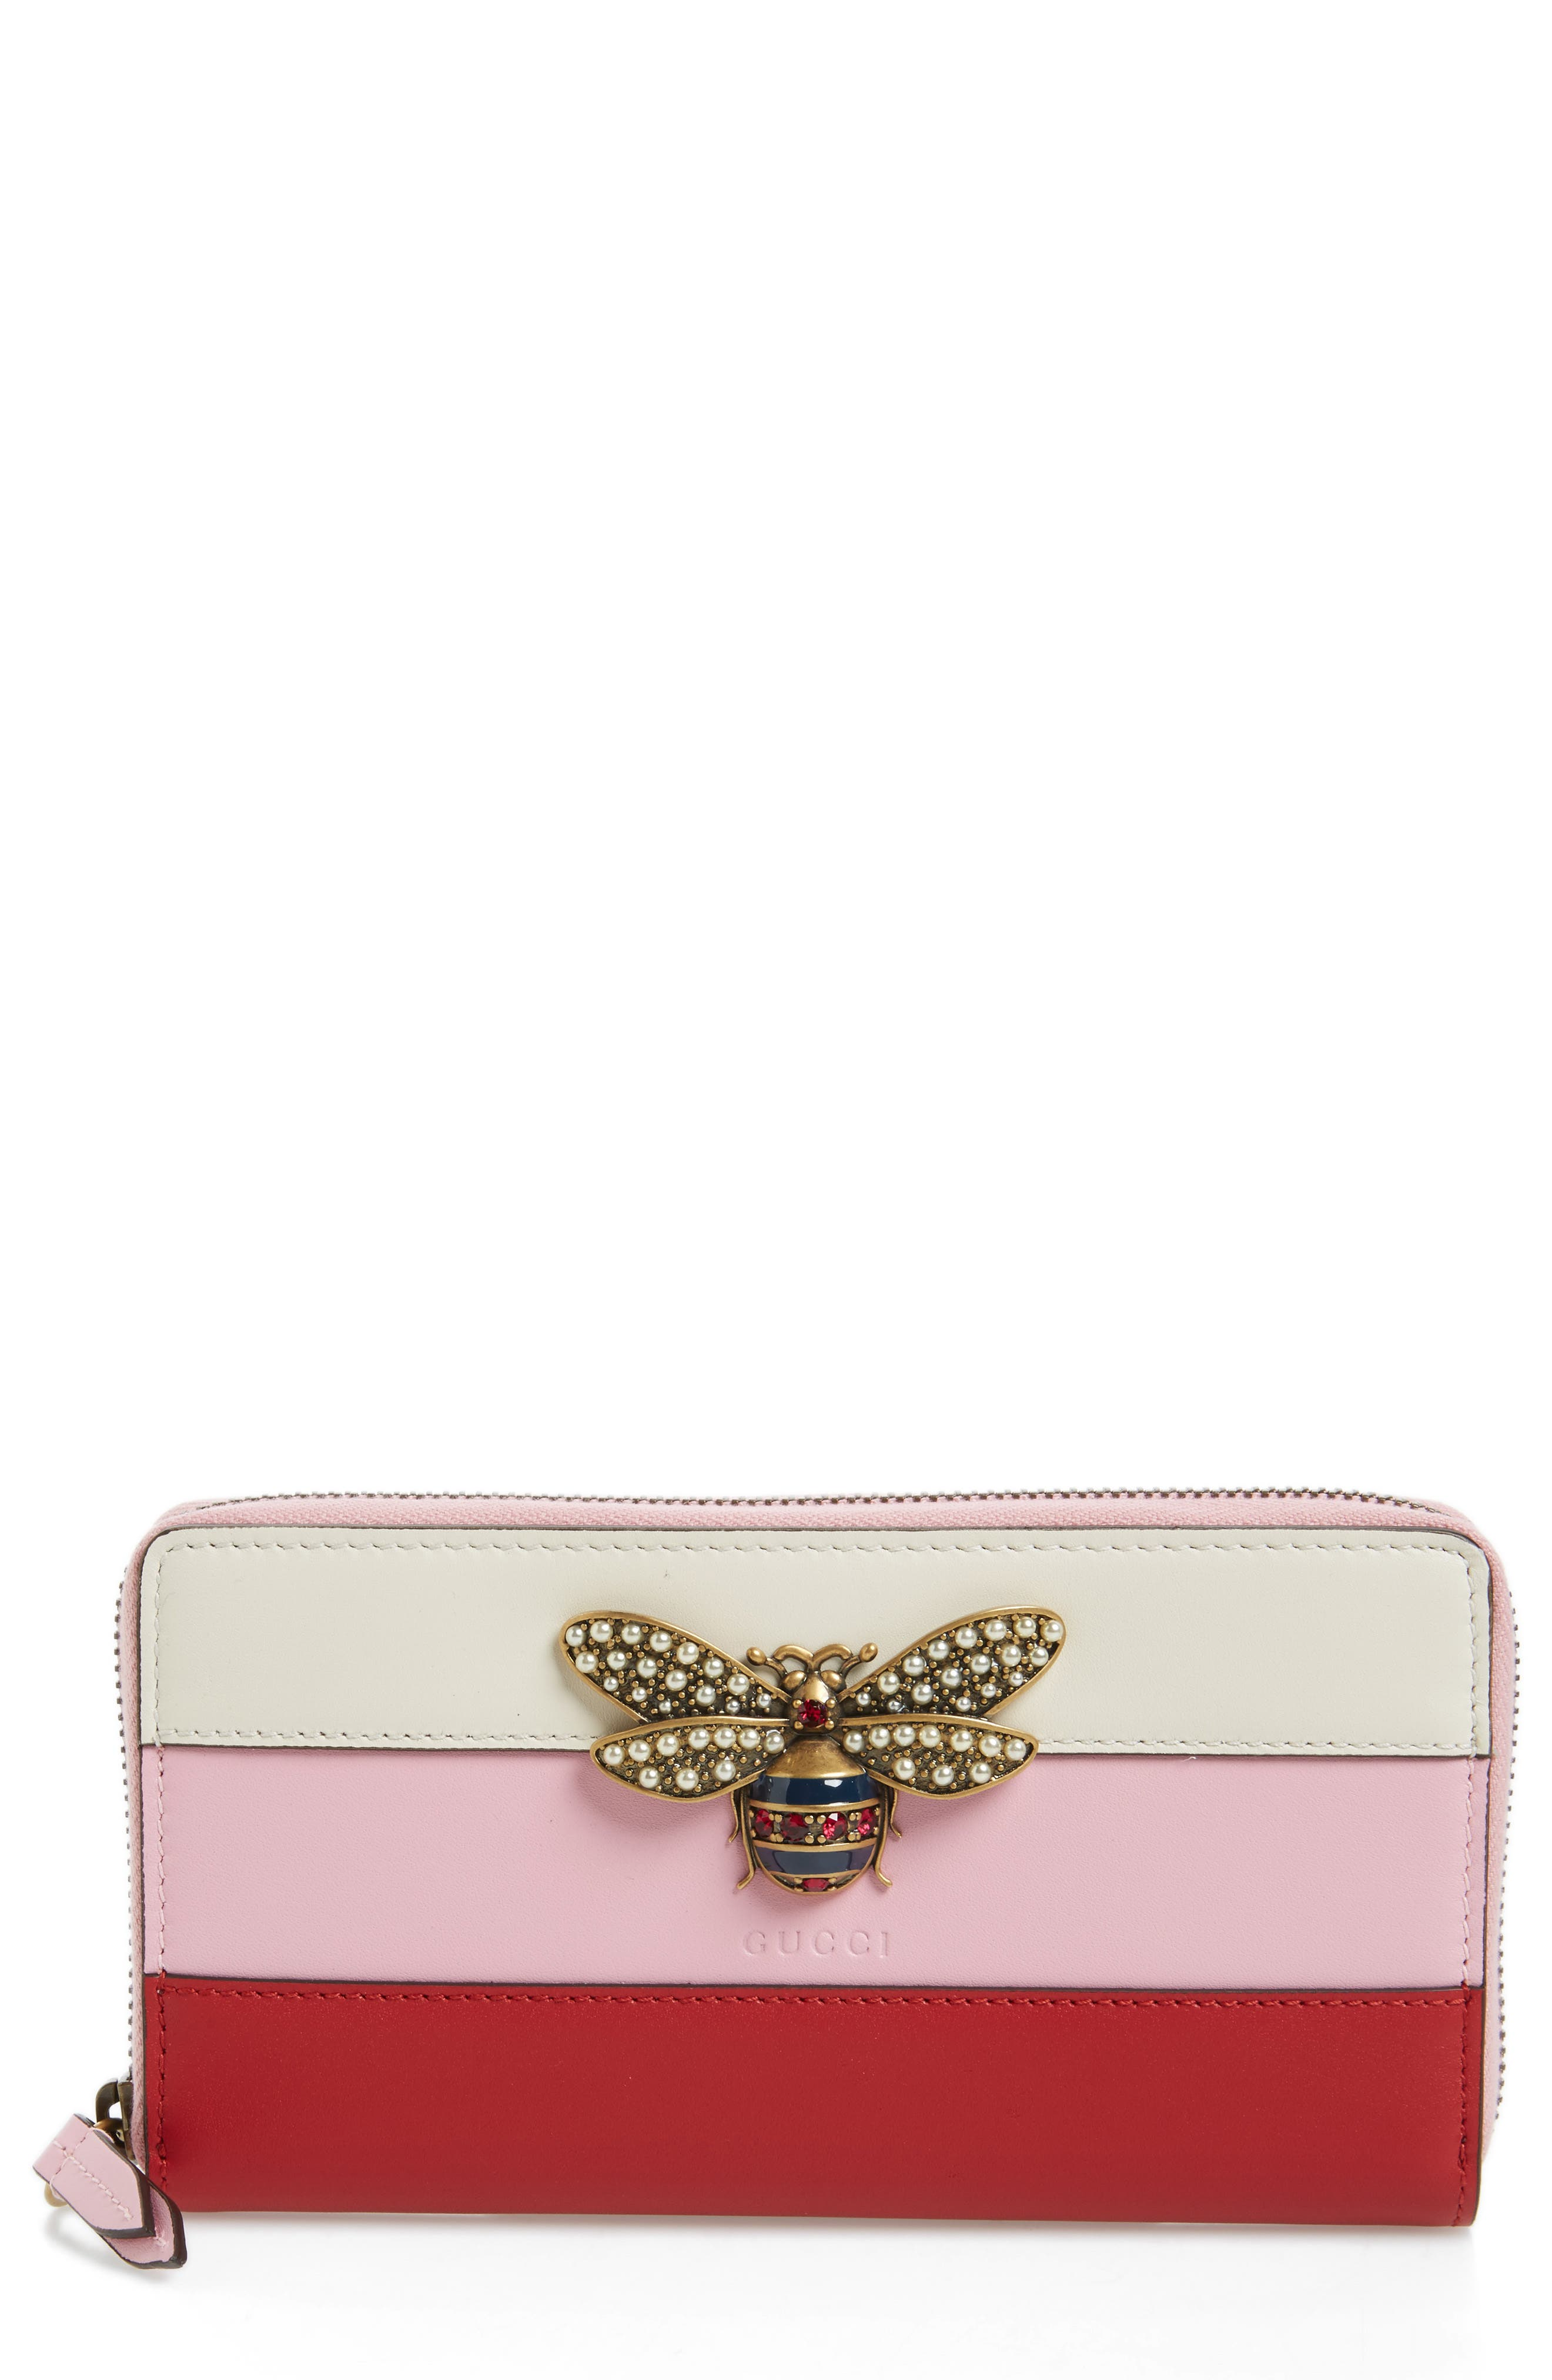 Gucci Embellished Bee Leather Zip Around Wallet